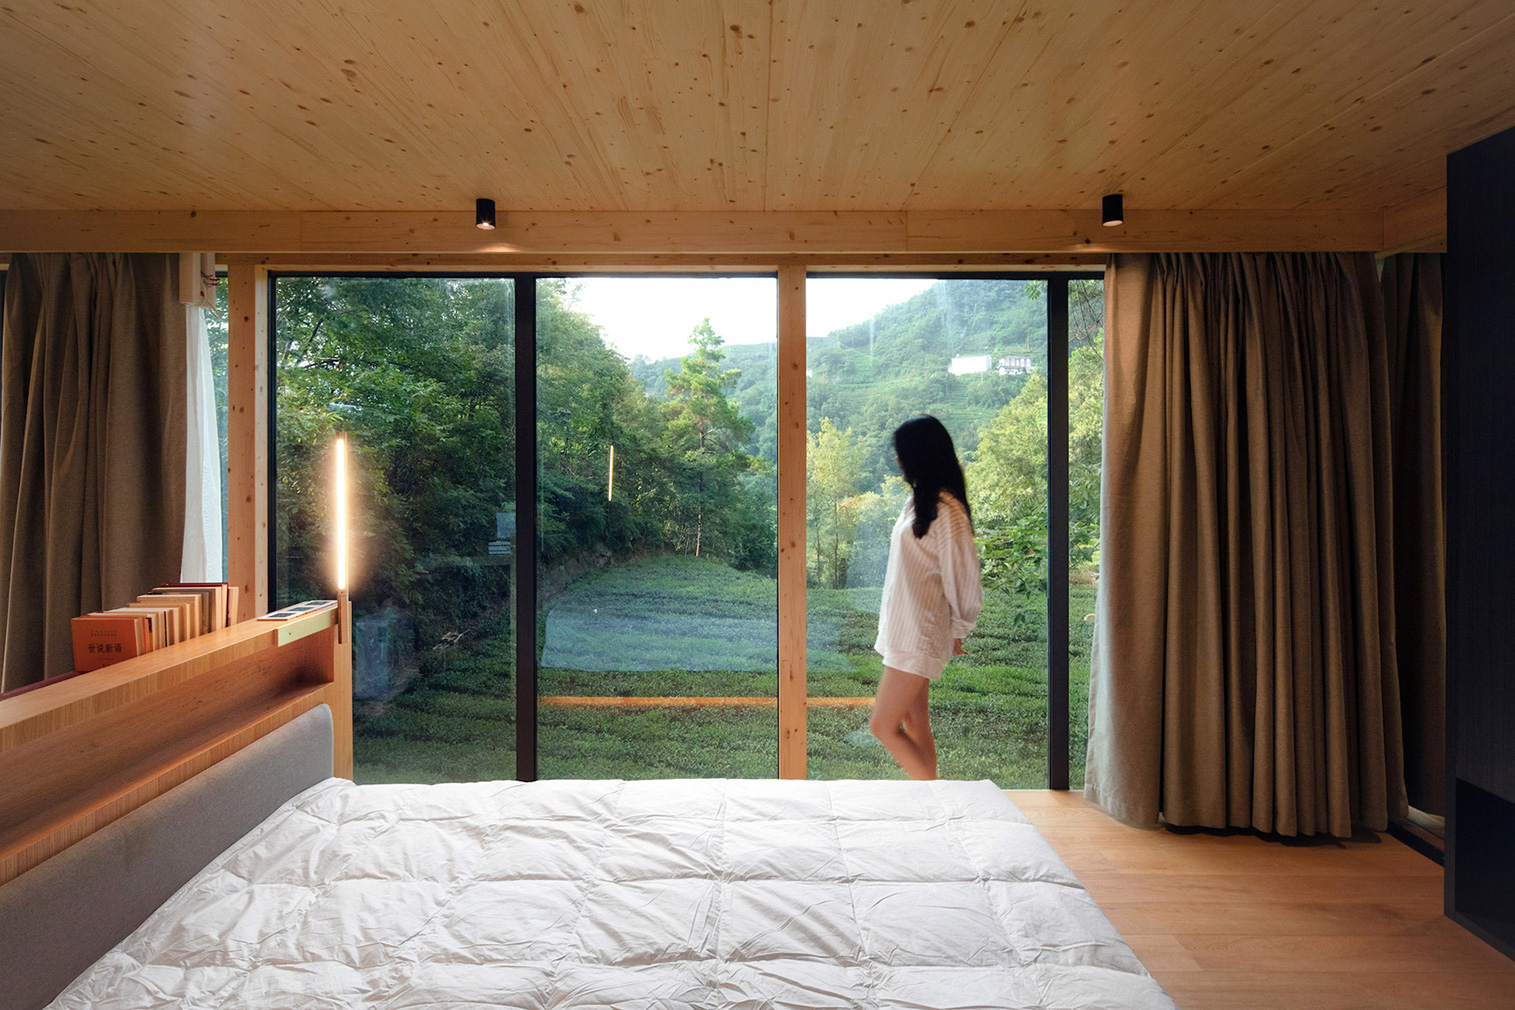 Yichang's Mountain and Cloud Cabins are 'spaceships in the woods'